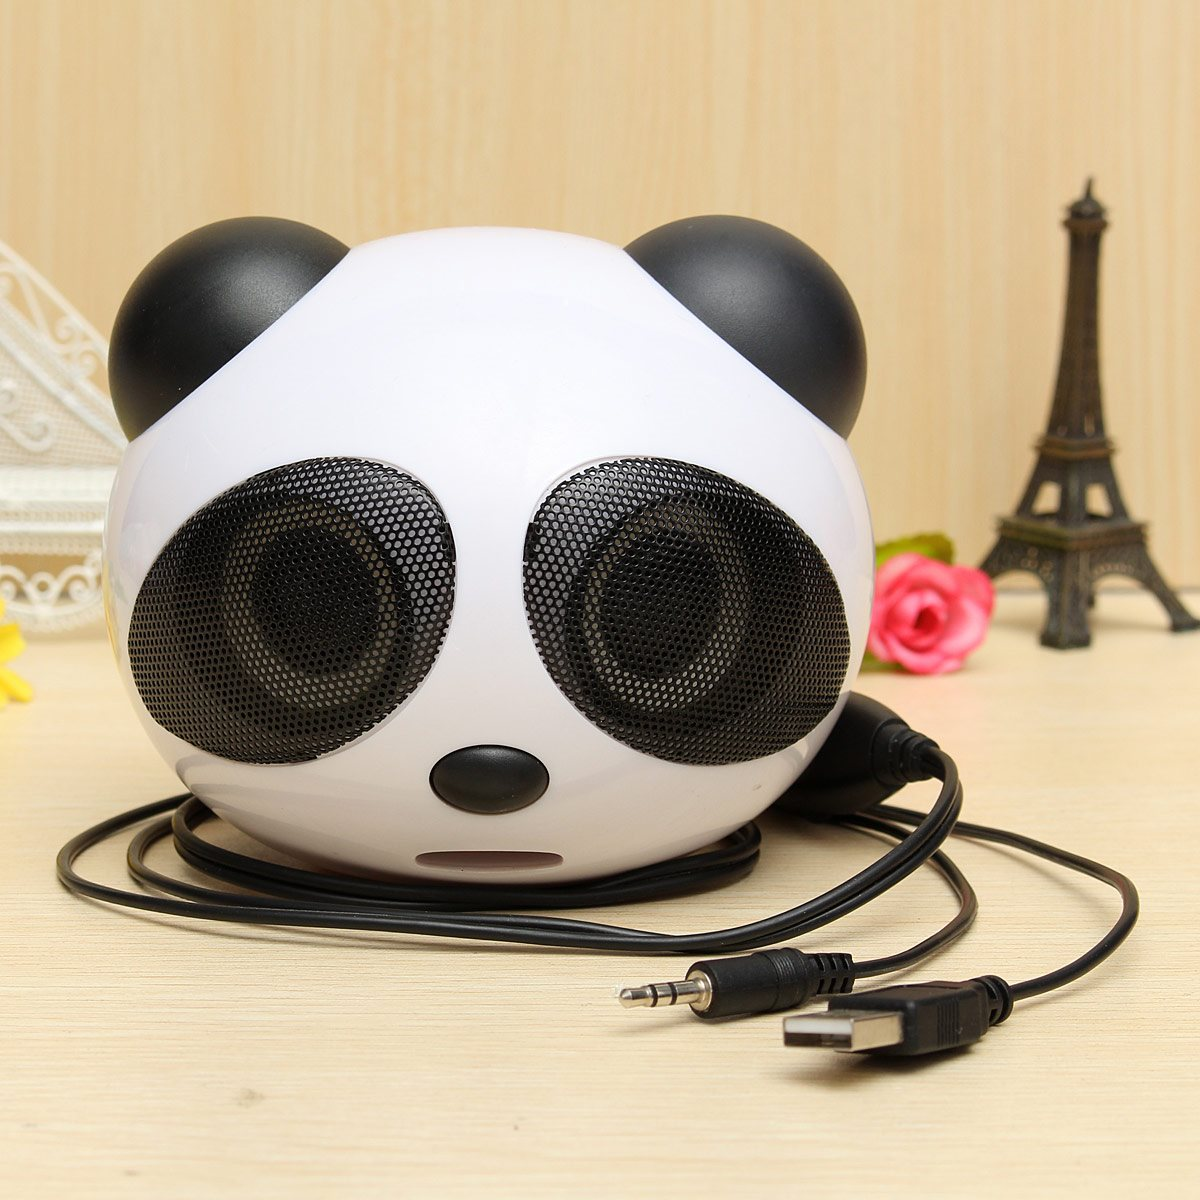 Wholesale universal Cute Panda Shape usb Portable Mini Stereo Speaker for Desktop Laptop Notebook Cellphone best quality price(China (Mainland))